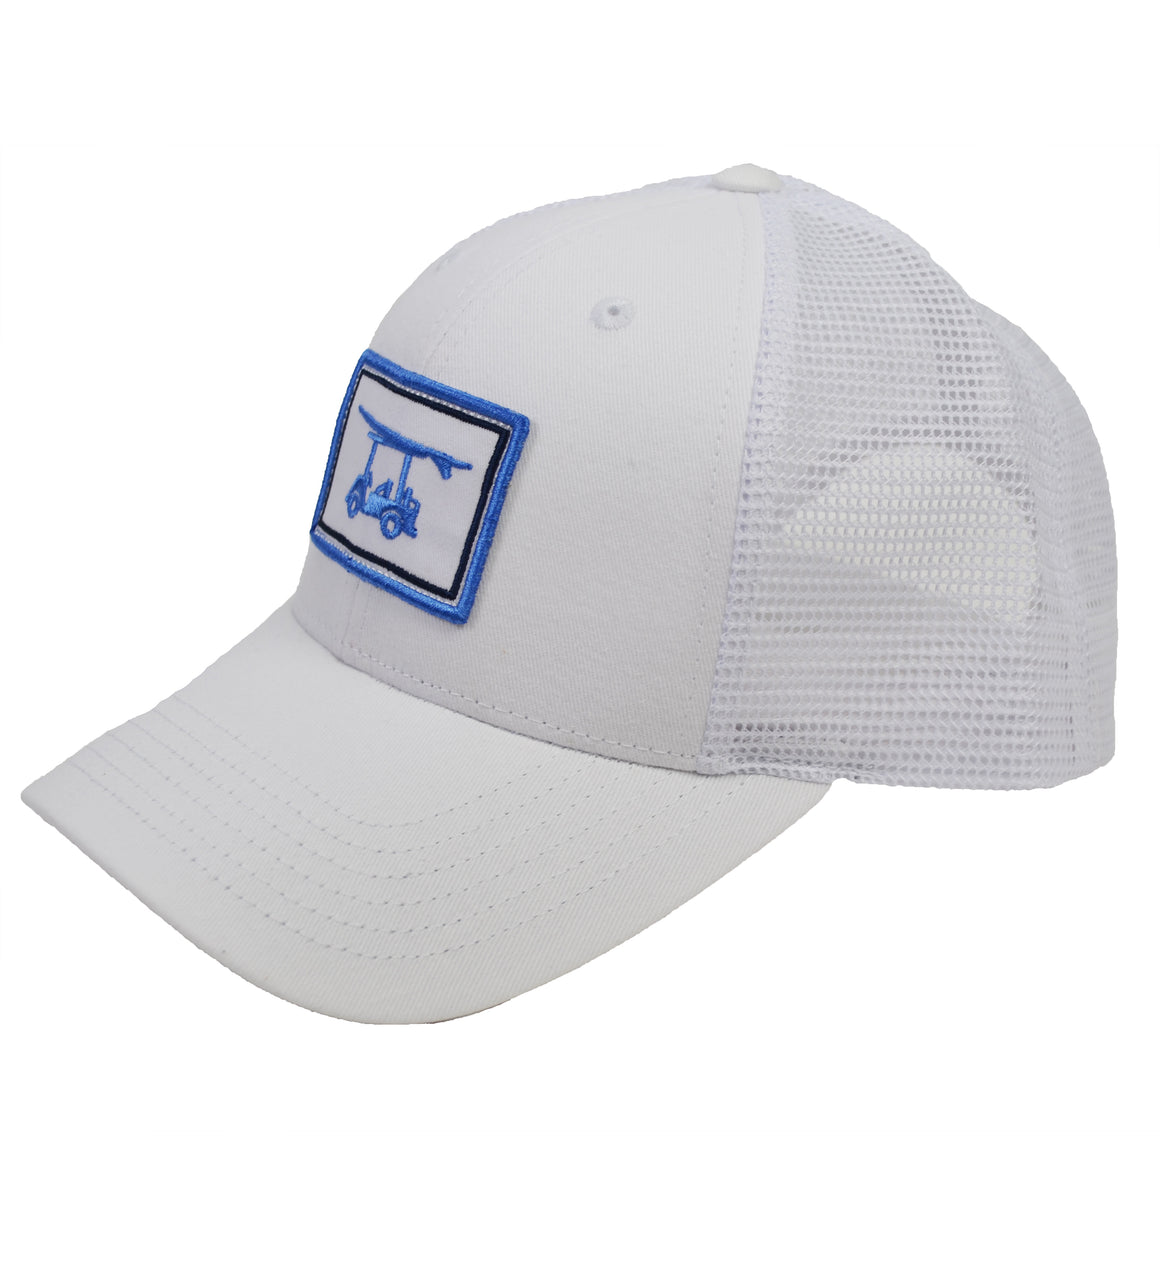 Trucker Hat - White